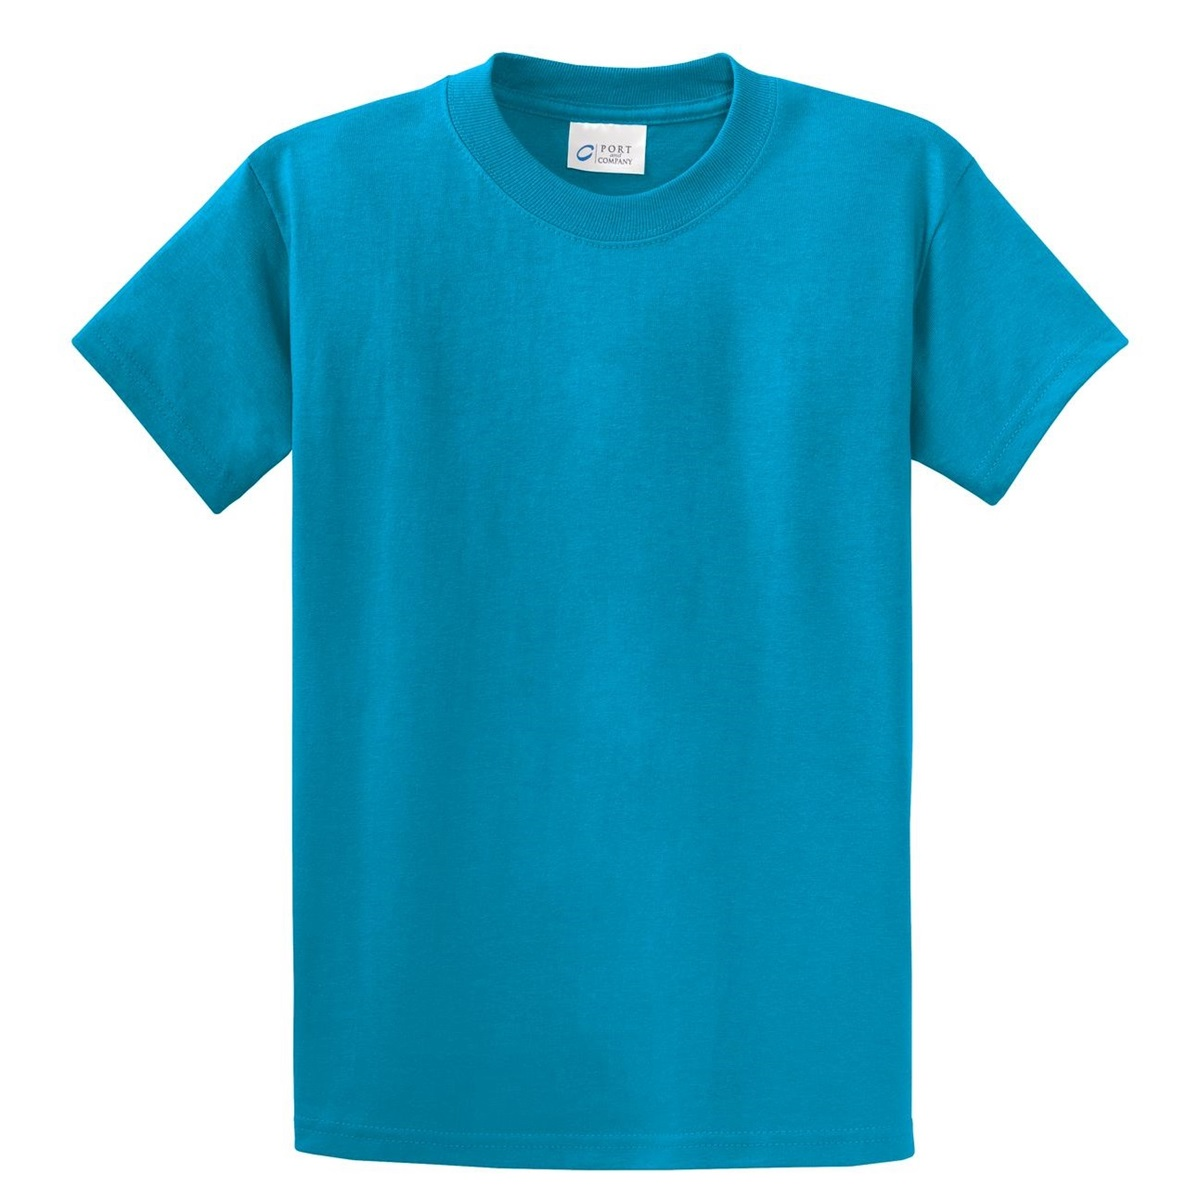 Port company pc61 essential t shirt turquoise for T shirt for company